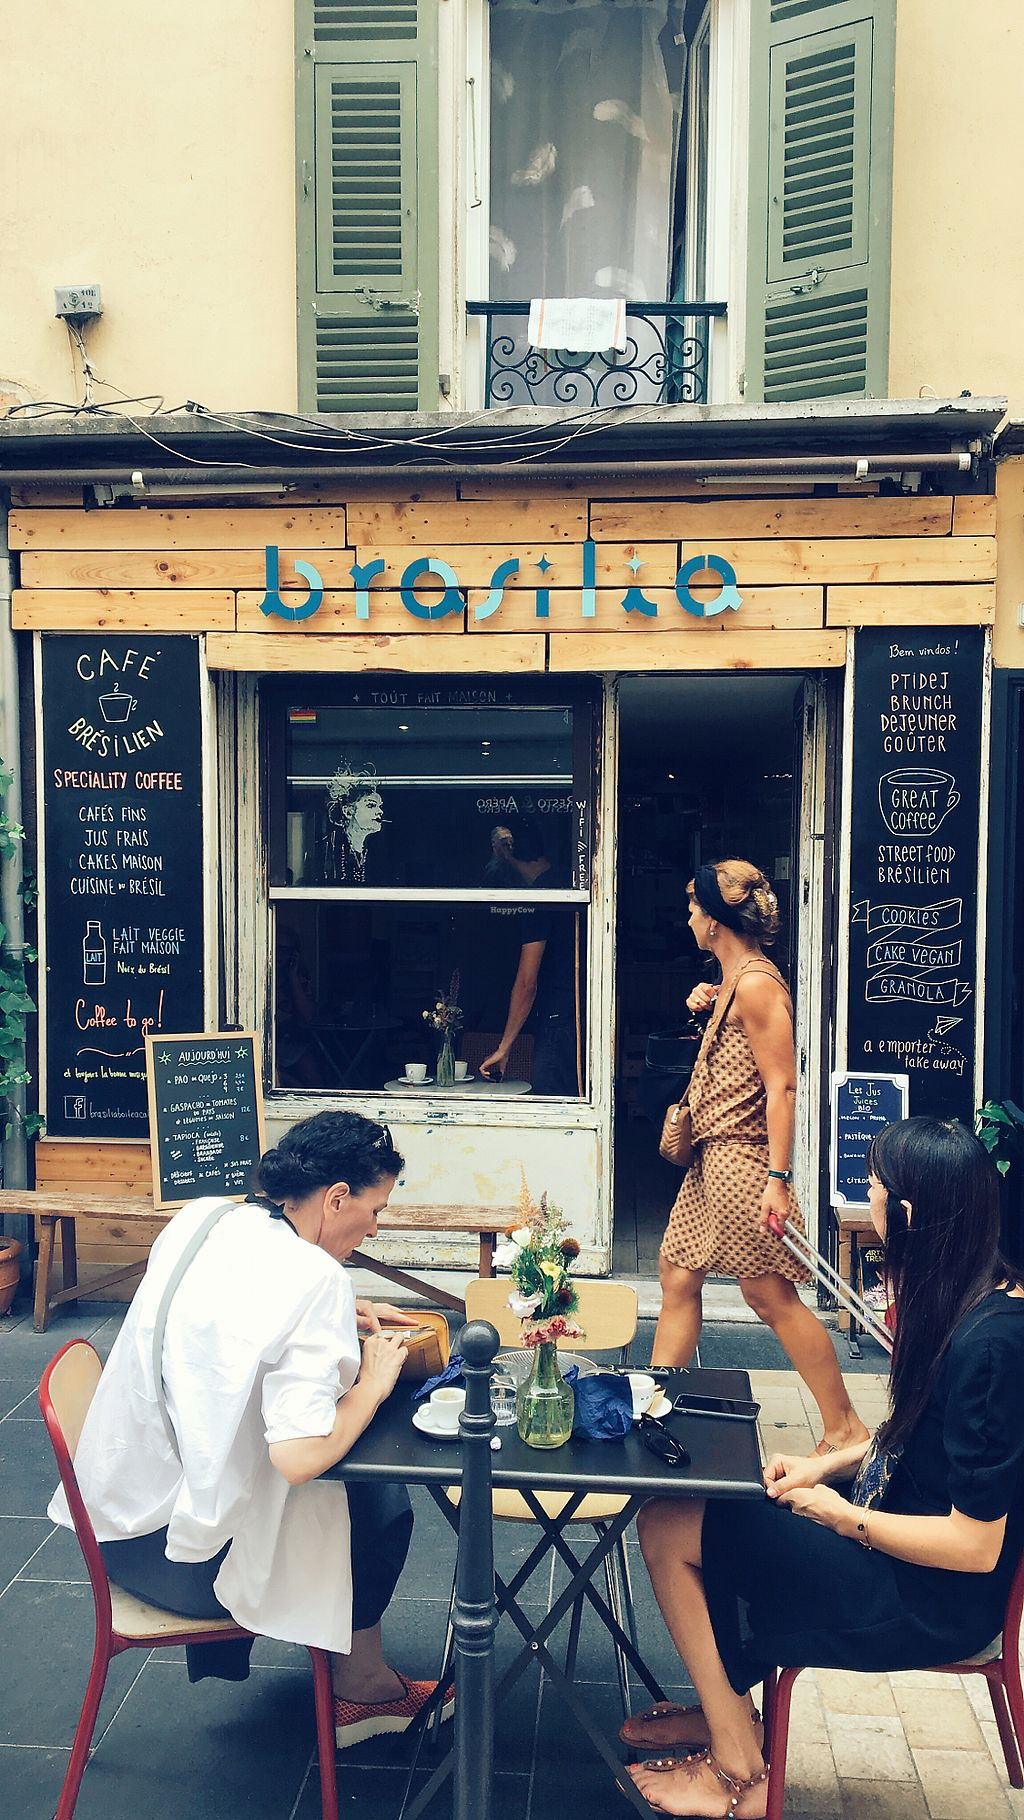 "Photo of Brasilia Boite a Cafe  by <a href=""/members/profile/Meadhbh91"">Meadhbh91</a> <br/>the front  <br/> August 11, 2017  - <a href='/contact/abuse/image/98296/291533'>Report</a>"